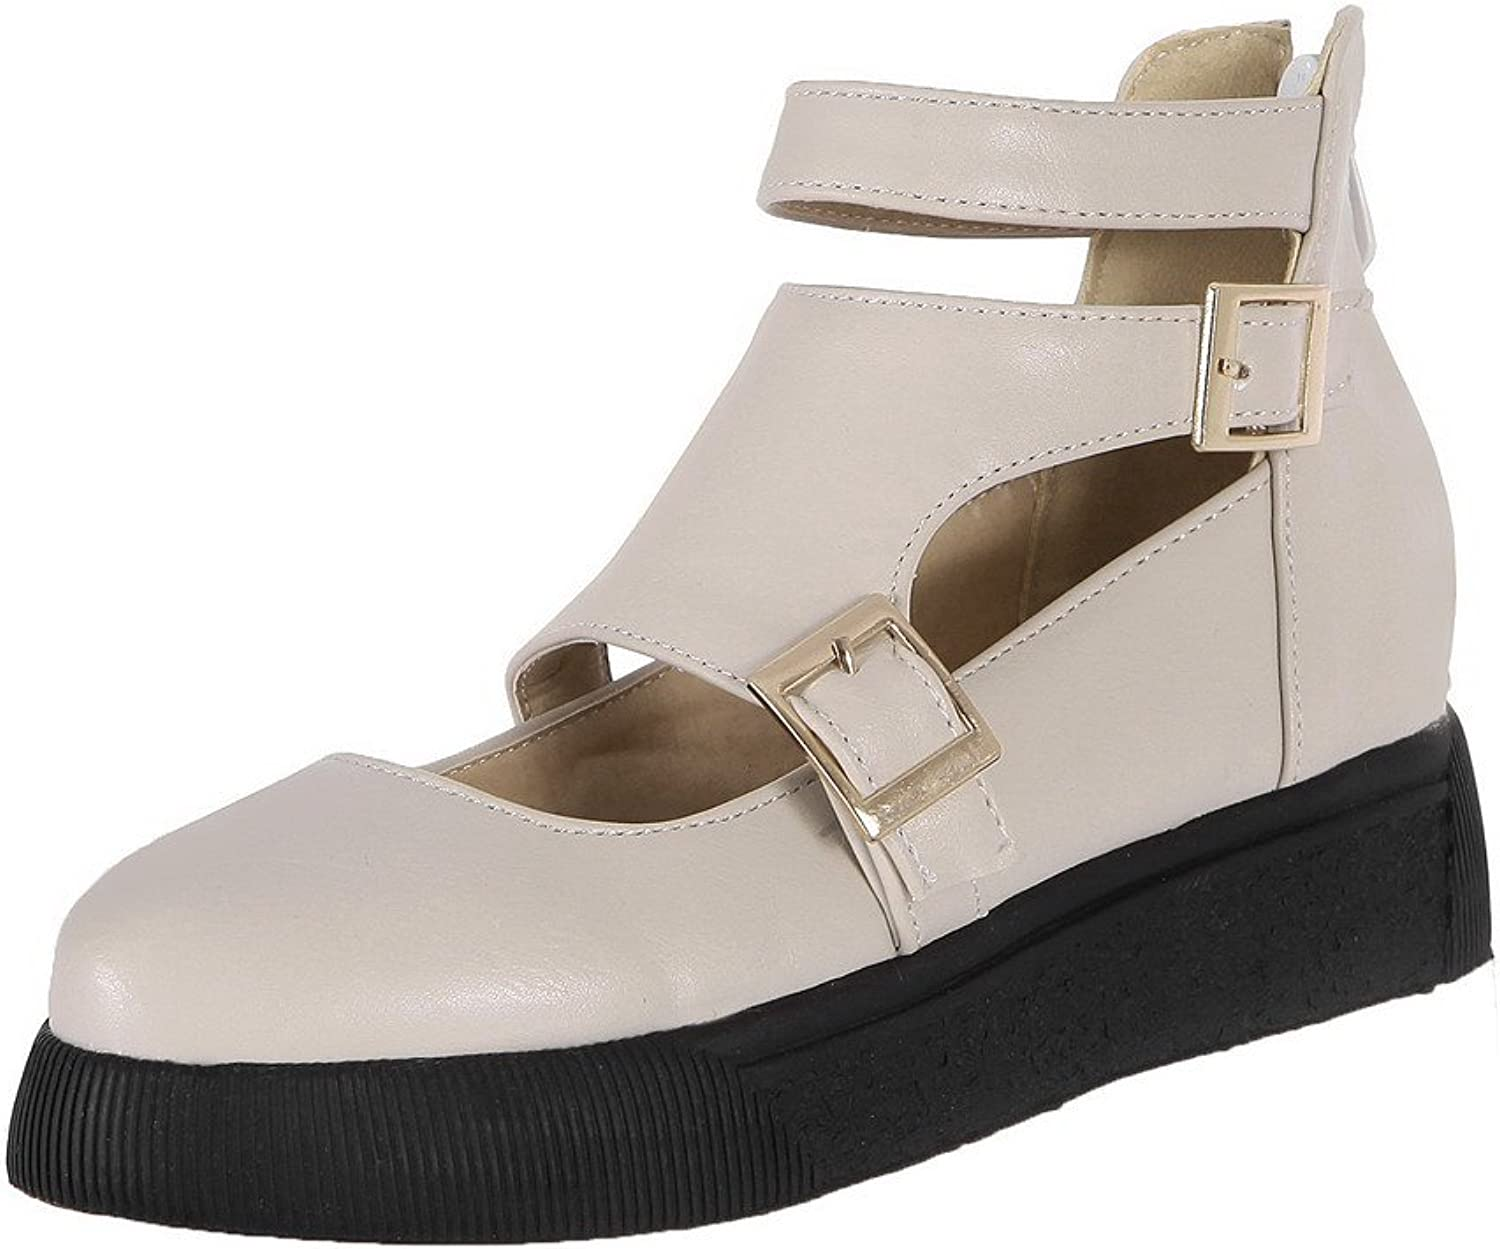 AmoonyFashion Women's Buckle PU Round Closed Toe Low-Heels Solid Pumps-shoes